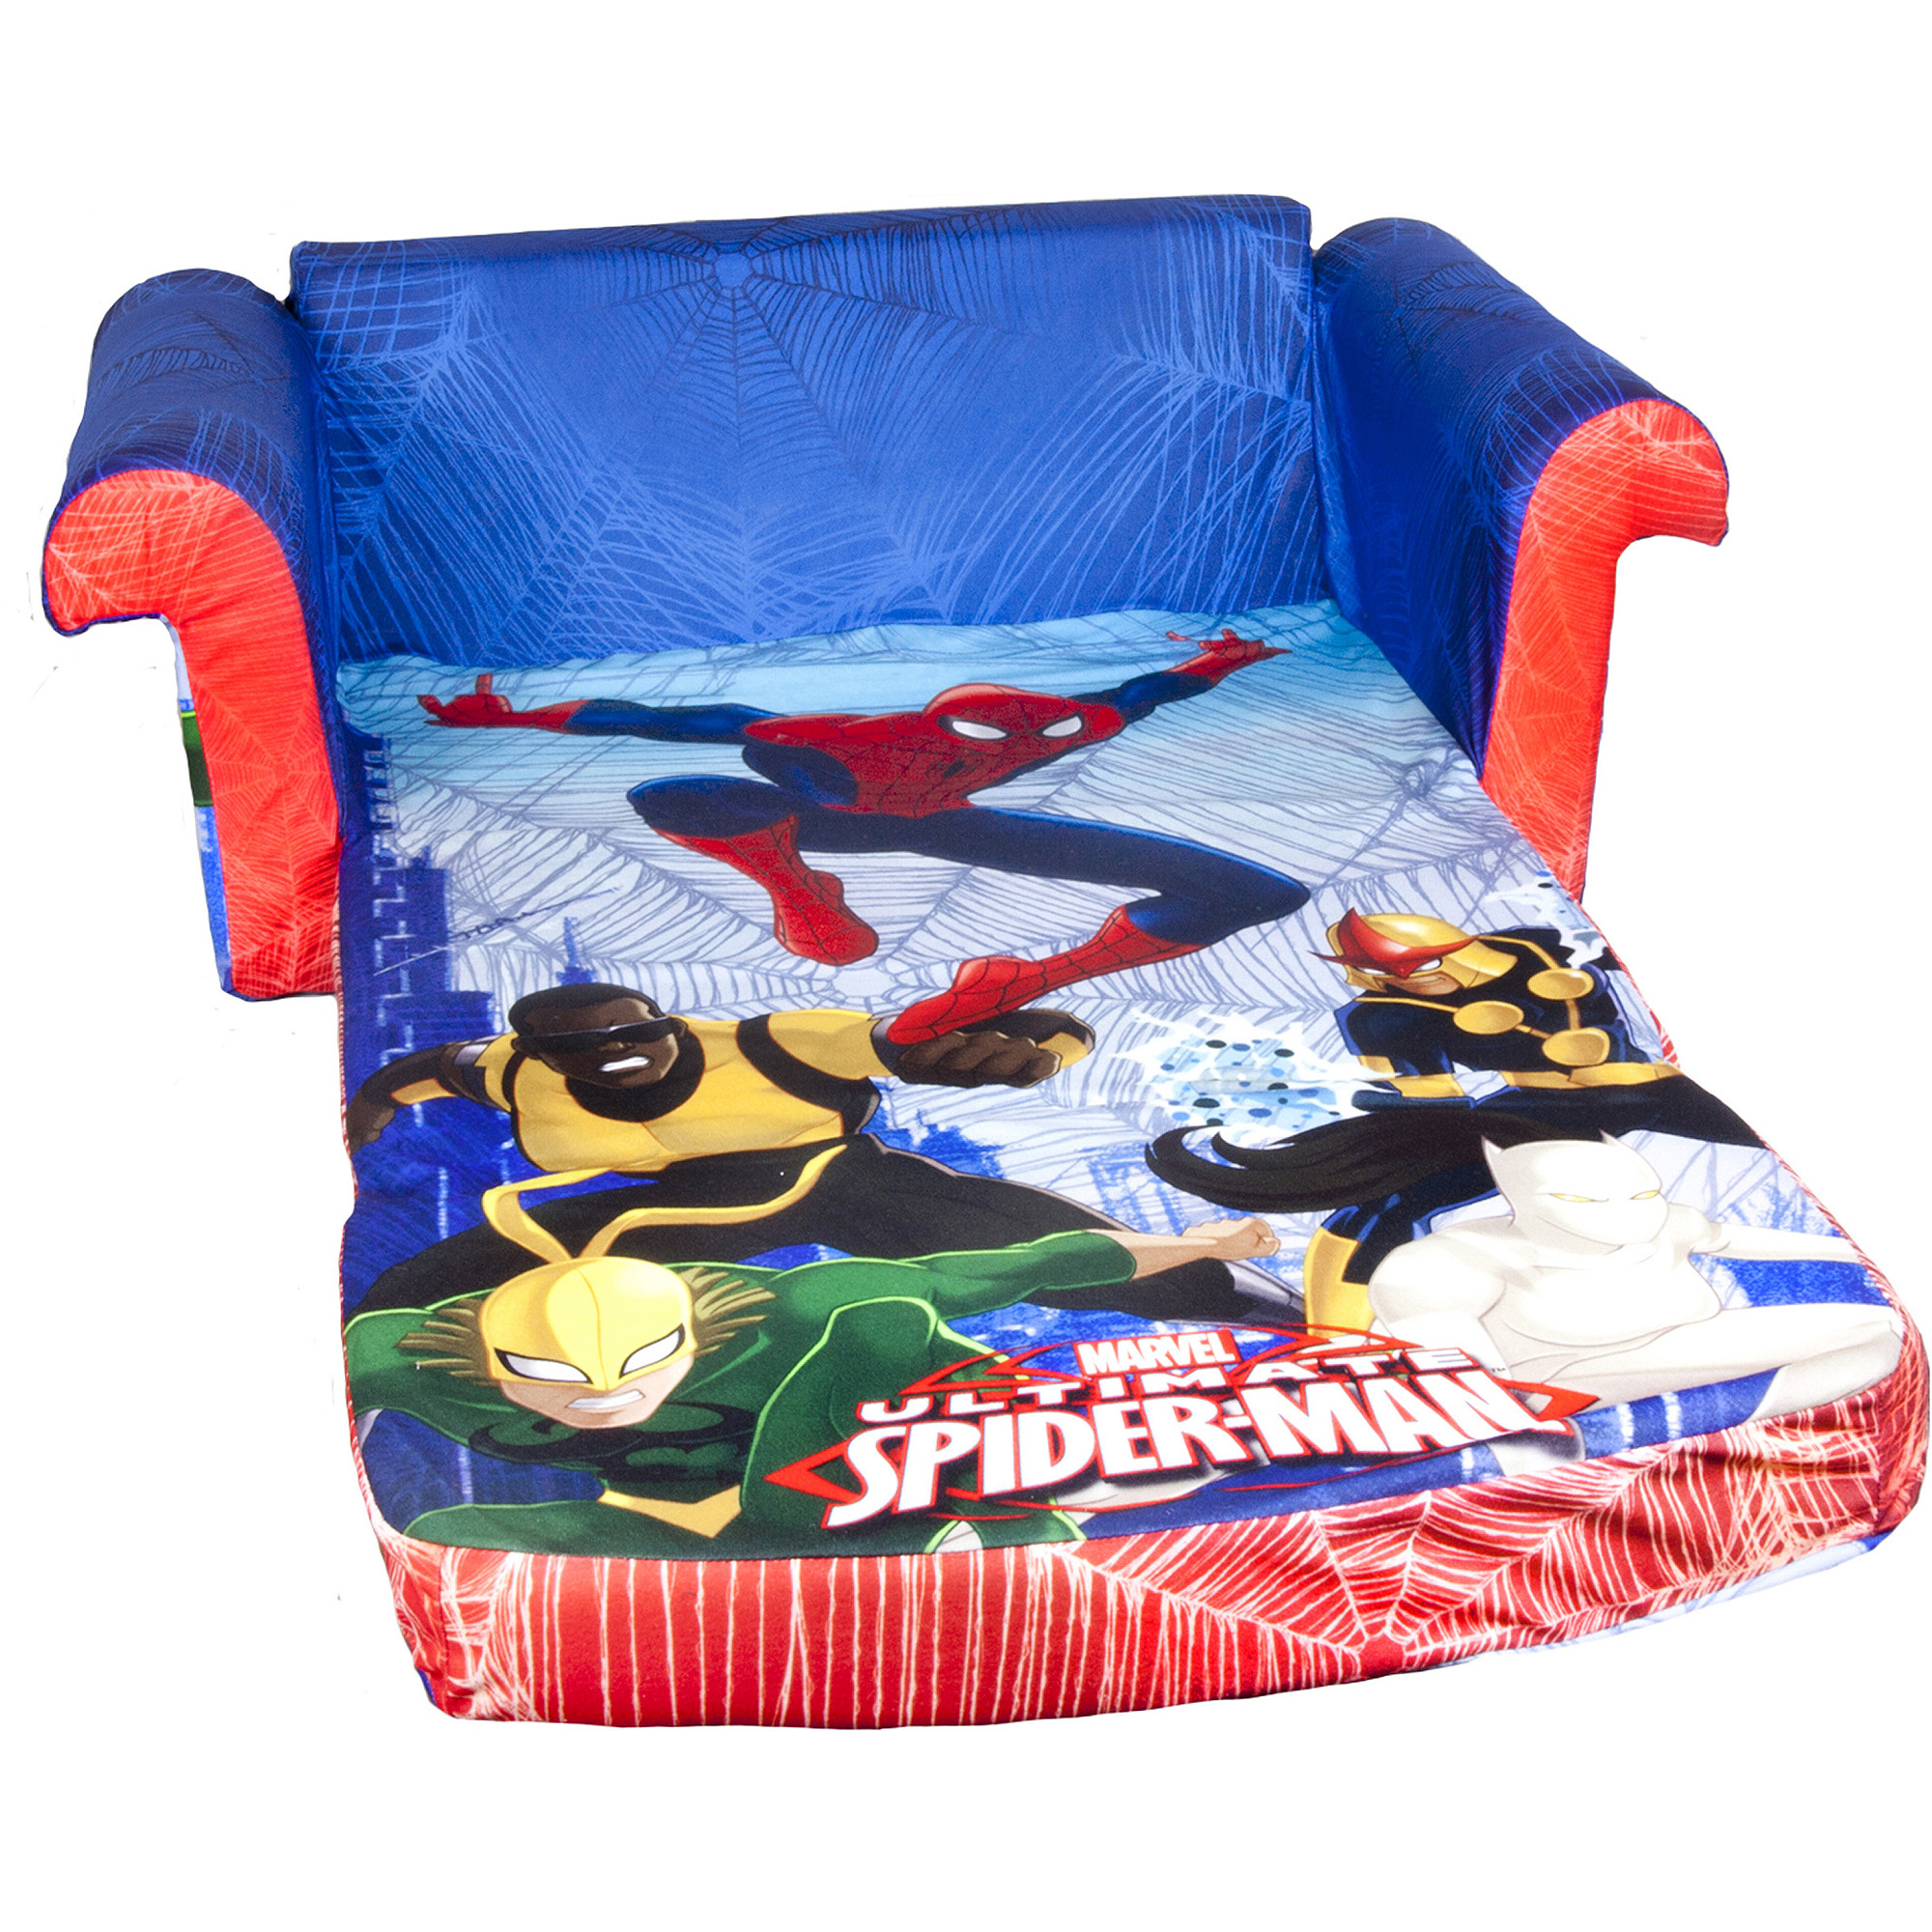 Toddler Flip Open Sofa | Flip Open Sofa Kids | Foldable Bed Chair